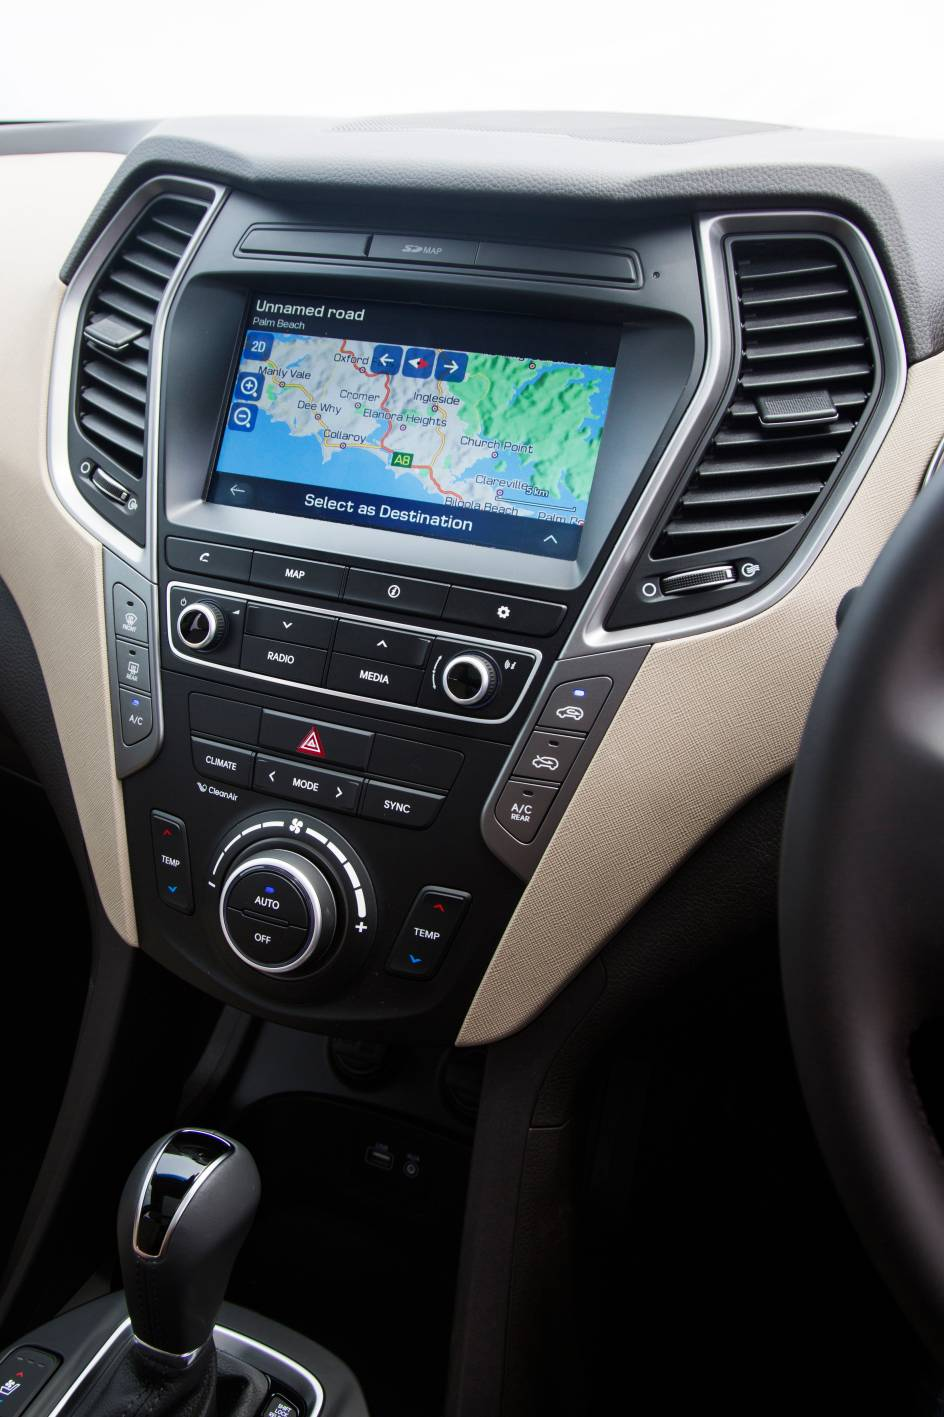 Hyundai Santa Fe delivers premium features - standard - which Euro manufacturers charge thousands extra for (like proximity key, panoramic roof, adaptive cruise and heated/ventilated seats